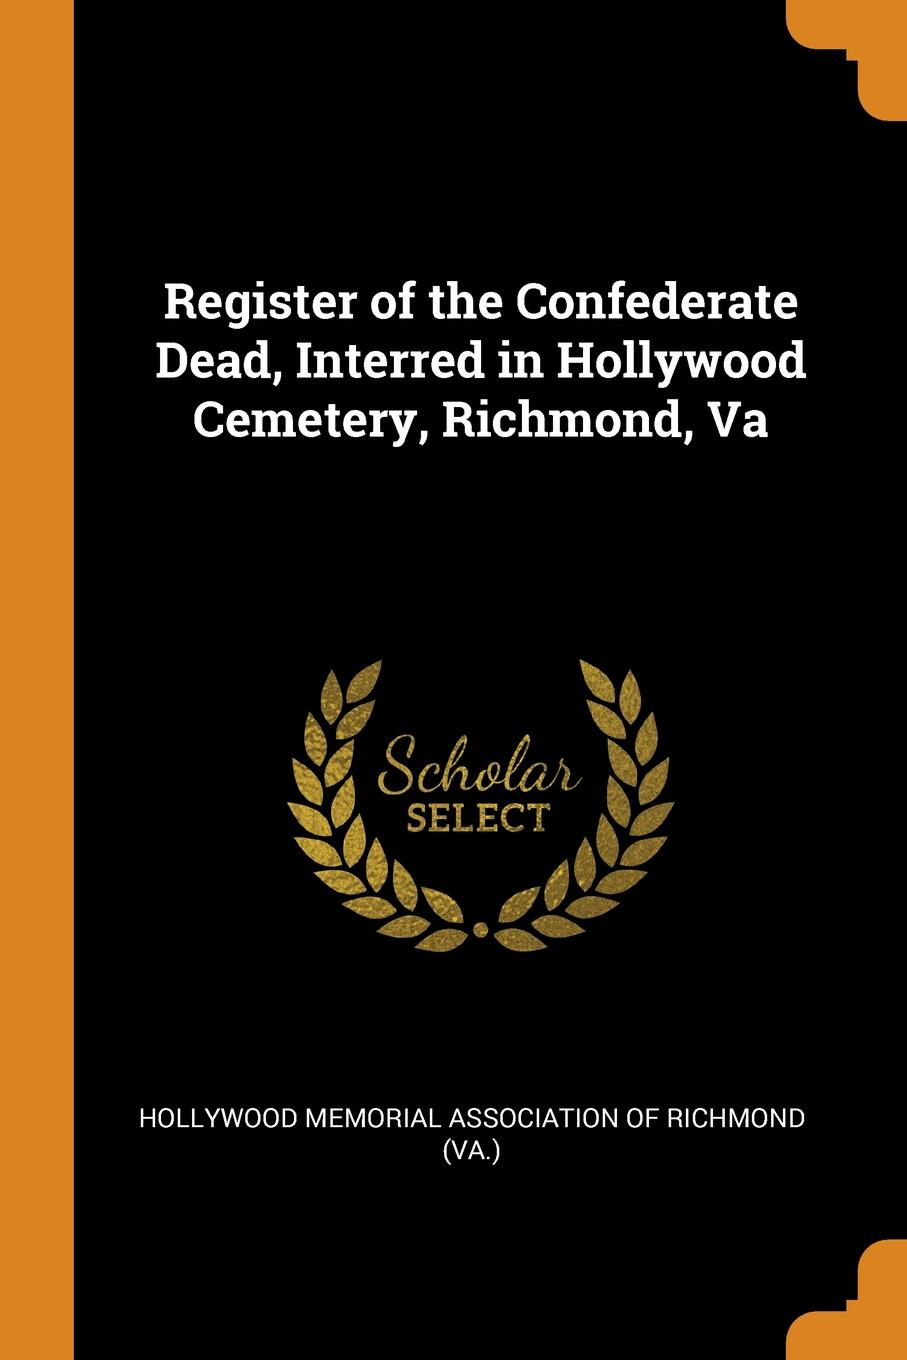 Register of the Confederate Dead, Interred in Hollywood Cemetery, Richmond, Va